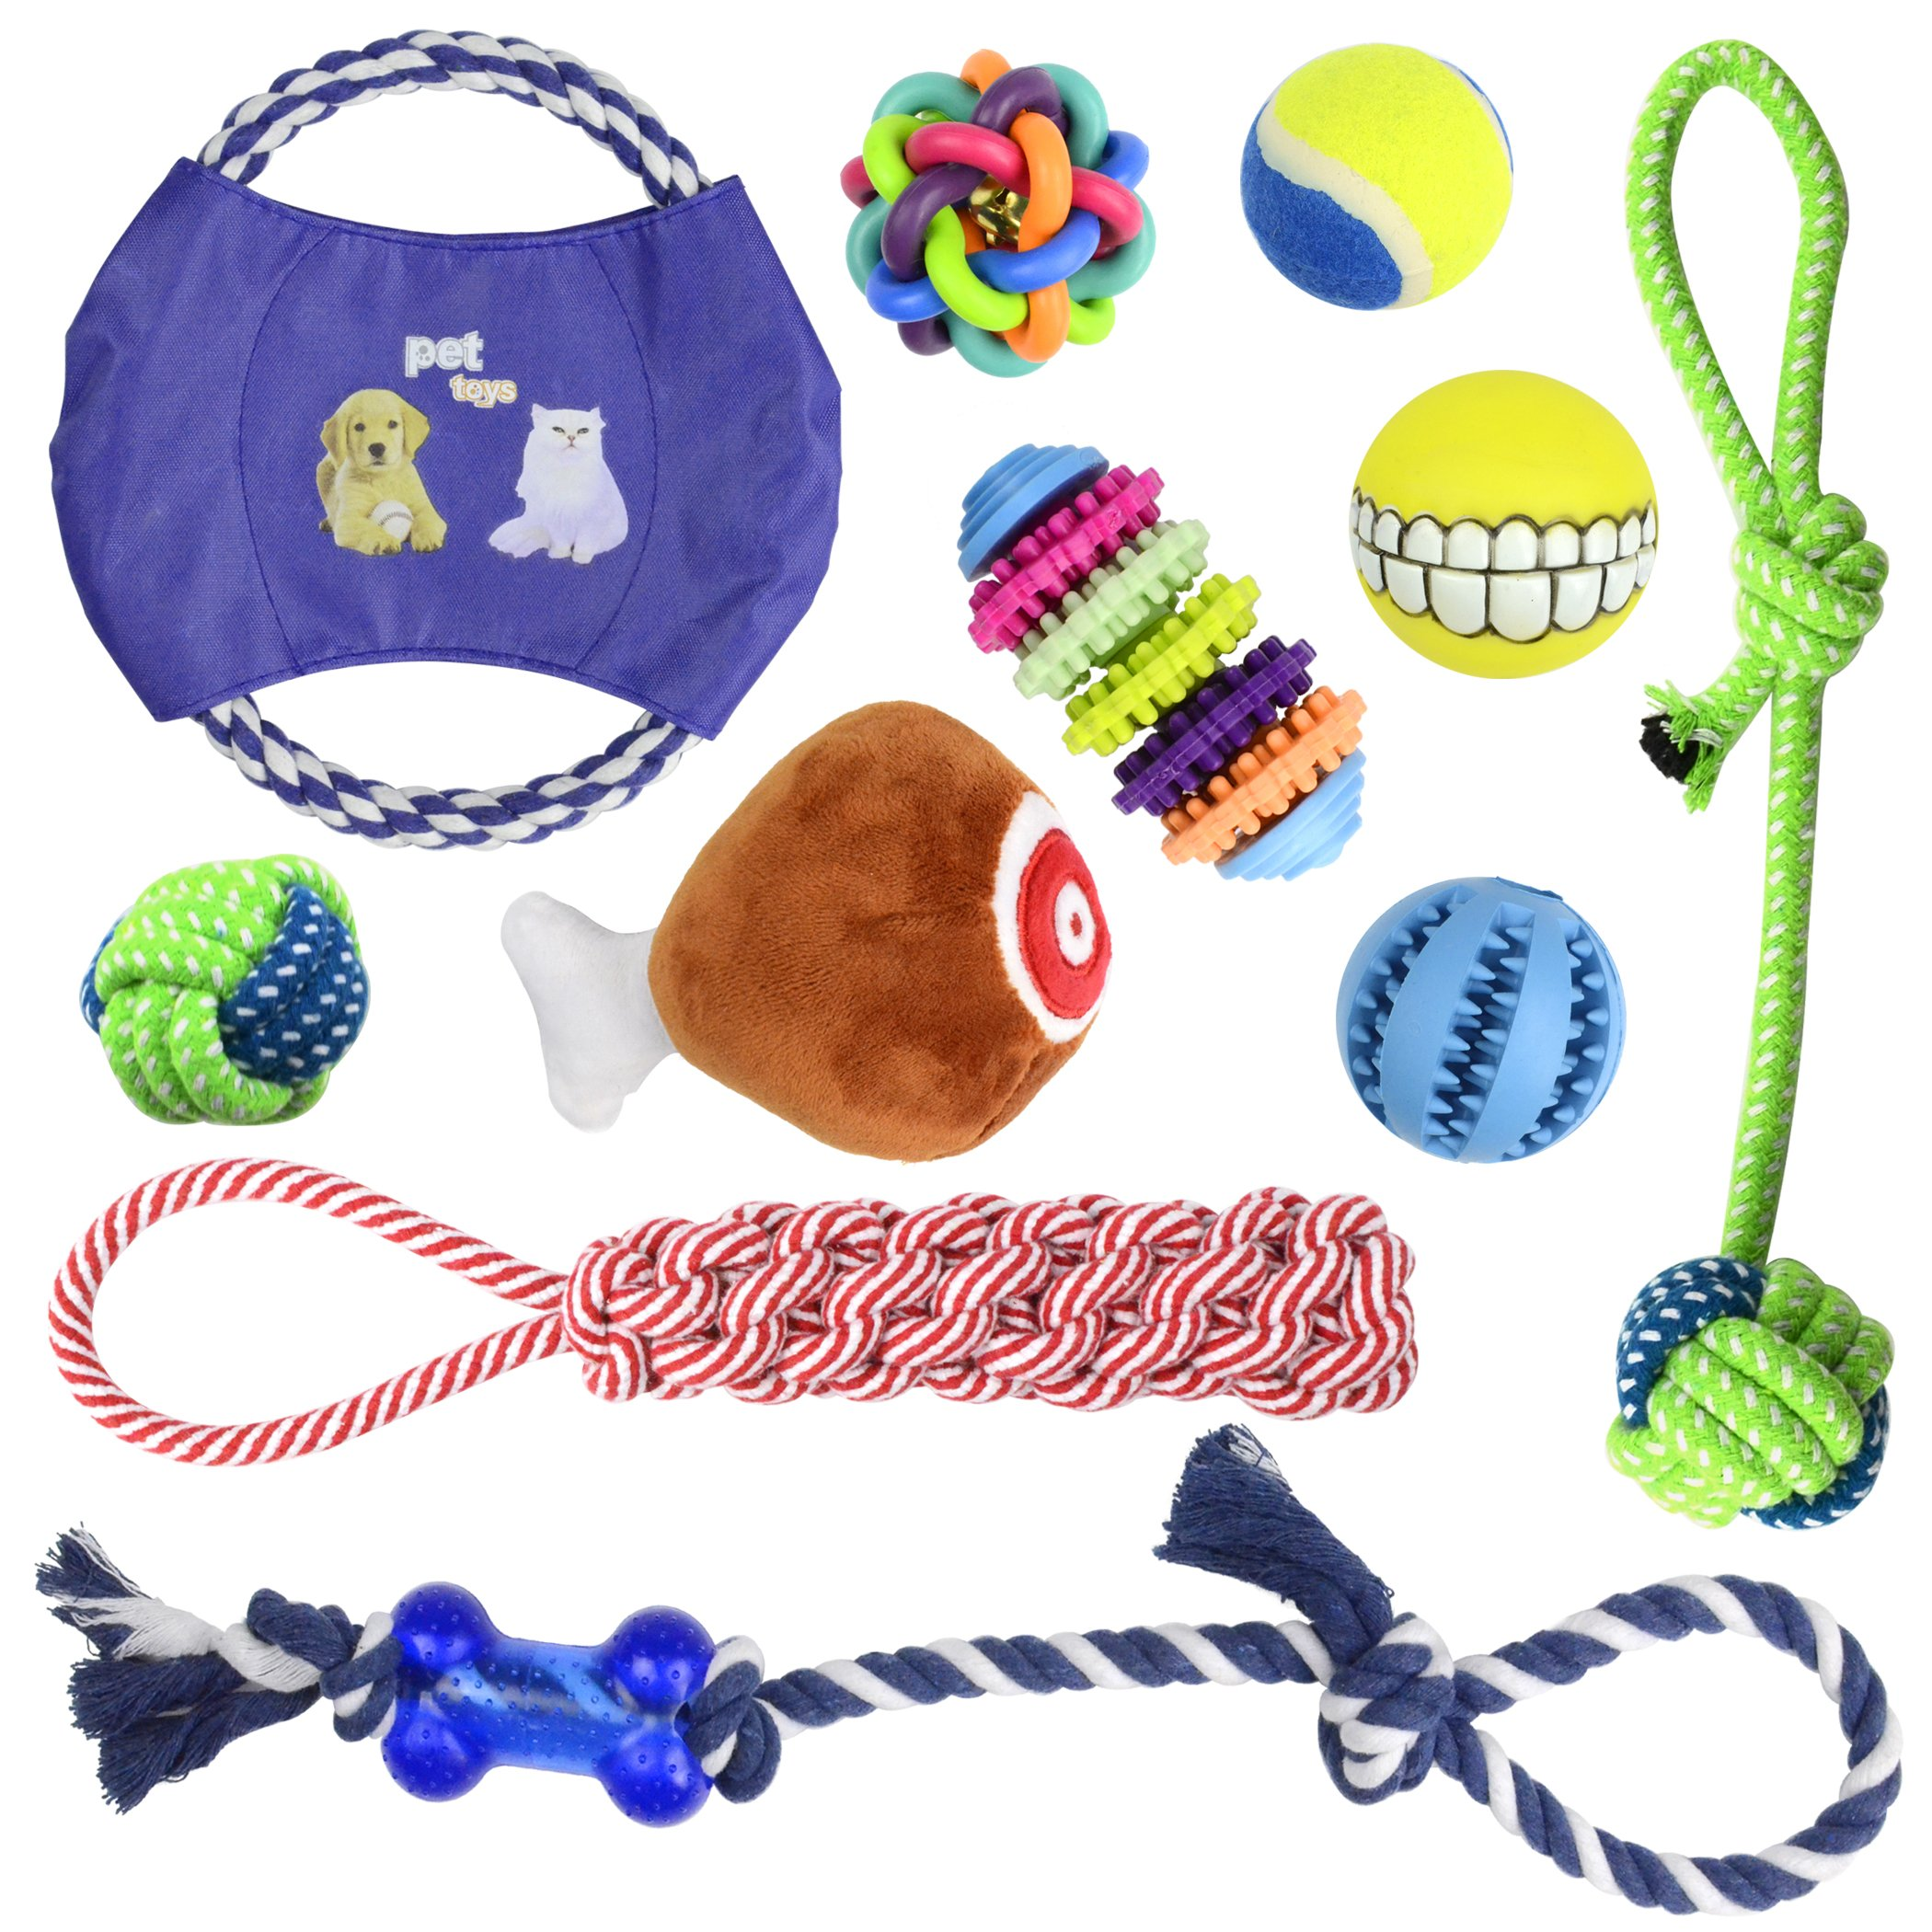 Whoobee Dog Chew Toys - 11 Pack Interactive Dog Toys - Chew Squeak Toys - Dog Toy Set - Rope Dog Toy - Medium and Small Puppy Chew Toys - Durable Dog Treat Balls - Pets Gift Set - Tug of War Ball